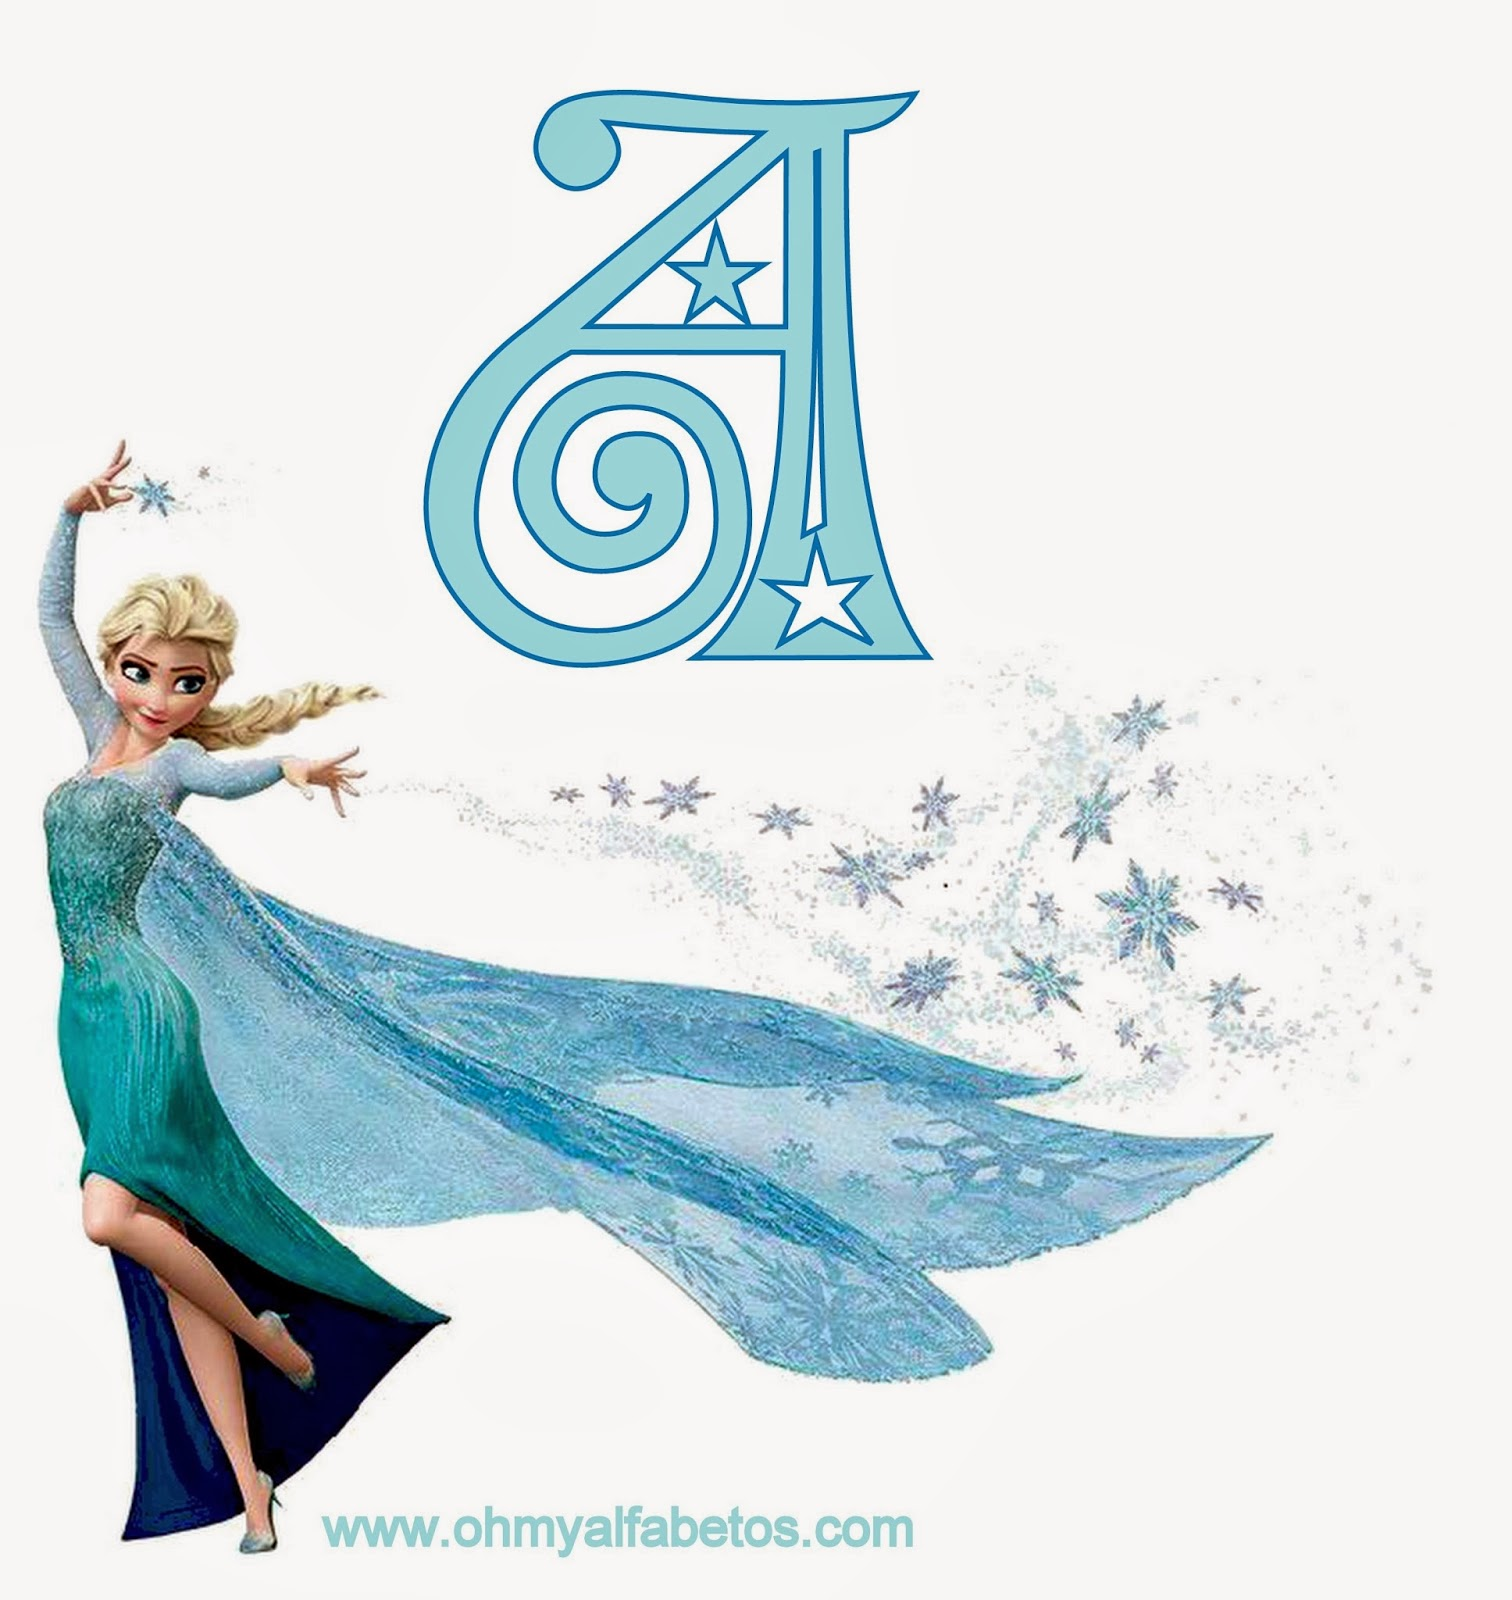 Frozen Free Printable Kit With Masks Tiaras And More Is It For